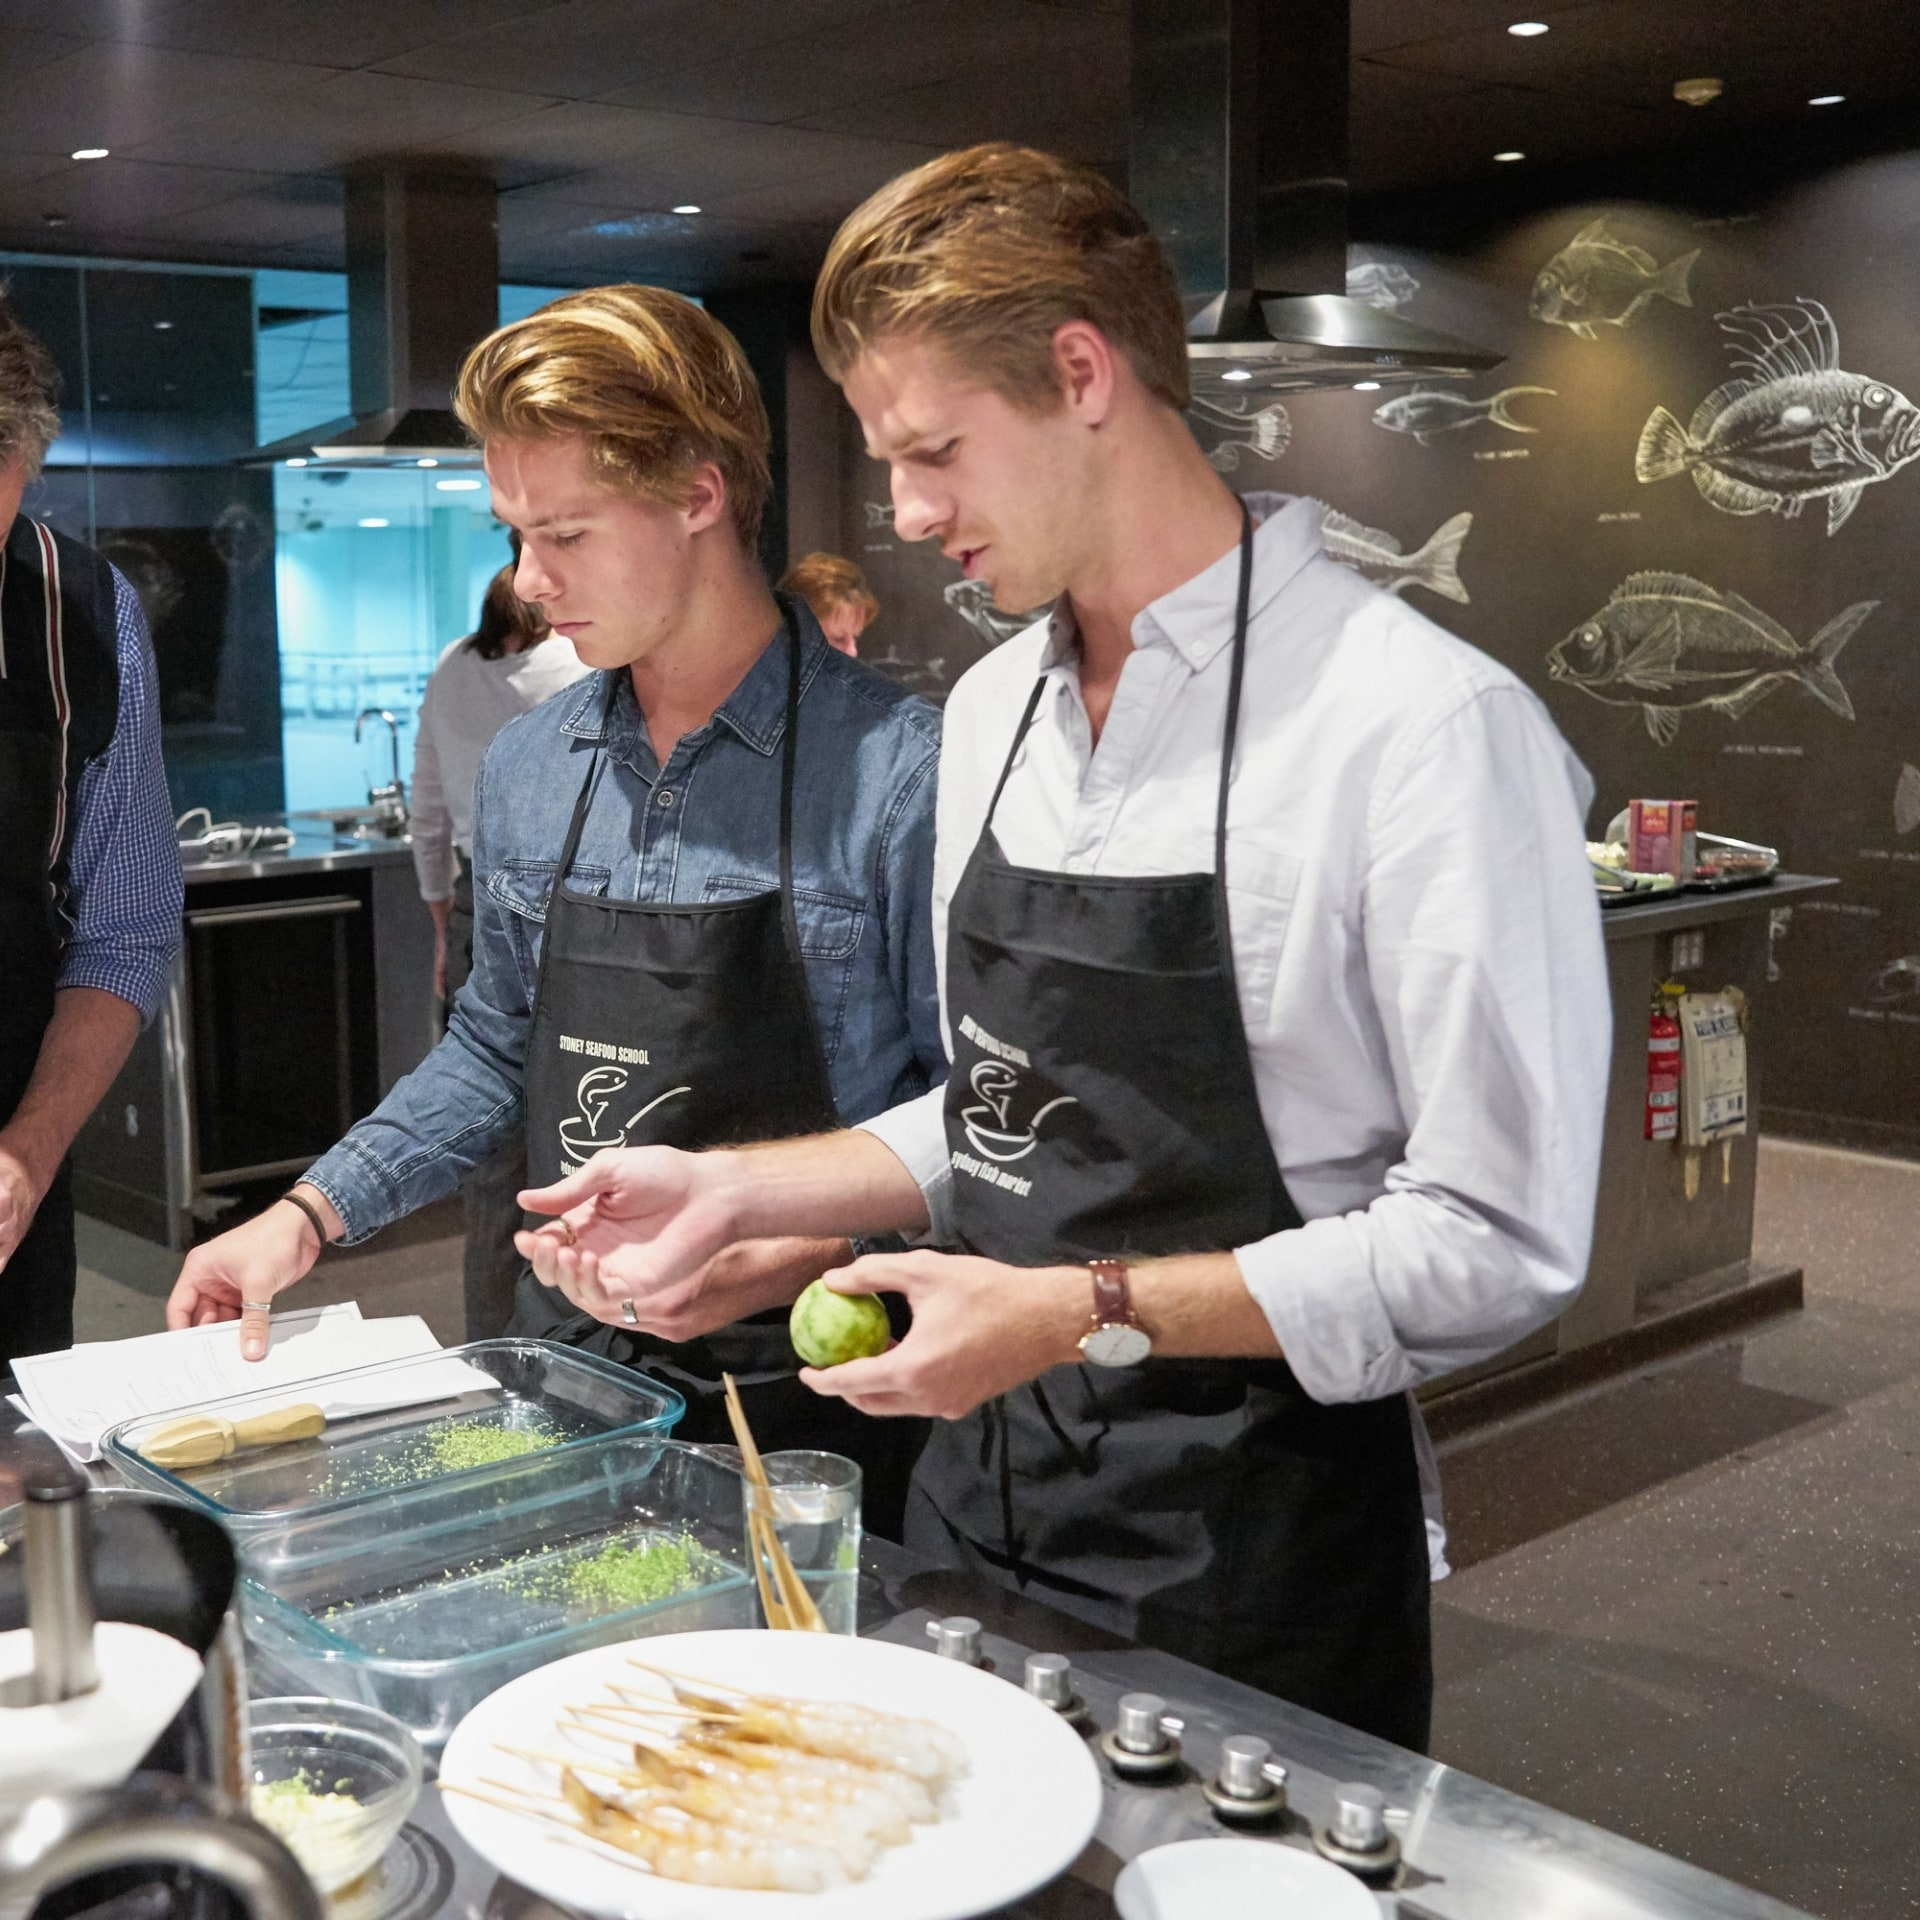 Students participating in a cooking class at Sydney Seafood School © Franz Scheurer Photography/Sydney Seafood School